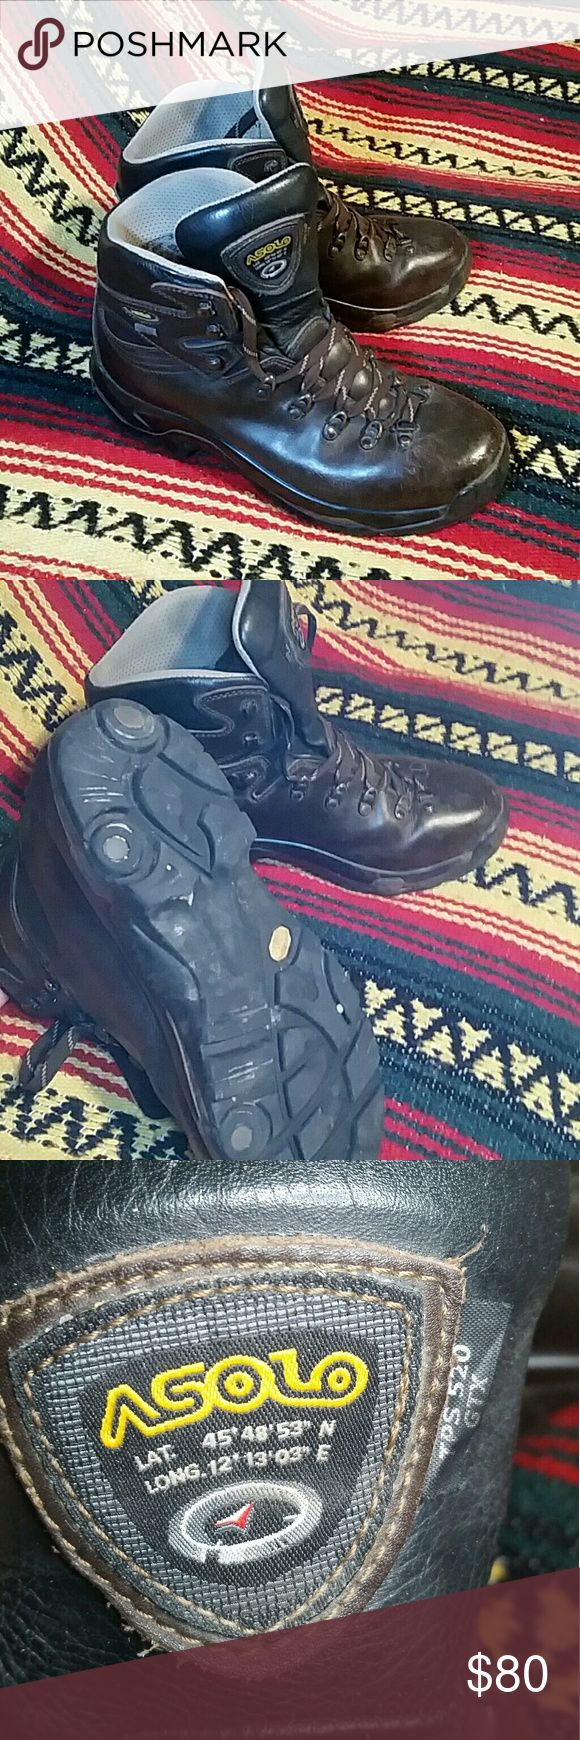 Asolo High-top Hiking Boots TPS 520 GTX Men's hiking boot in size 10.5. Asolo high top, leather with gortex. Used but Good to great condition, plenty of life still left in these guys. Selling because my boyfriend hoards more shoes than me, haha! Any questions, please ask! Asolo Shoes Boots